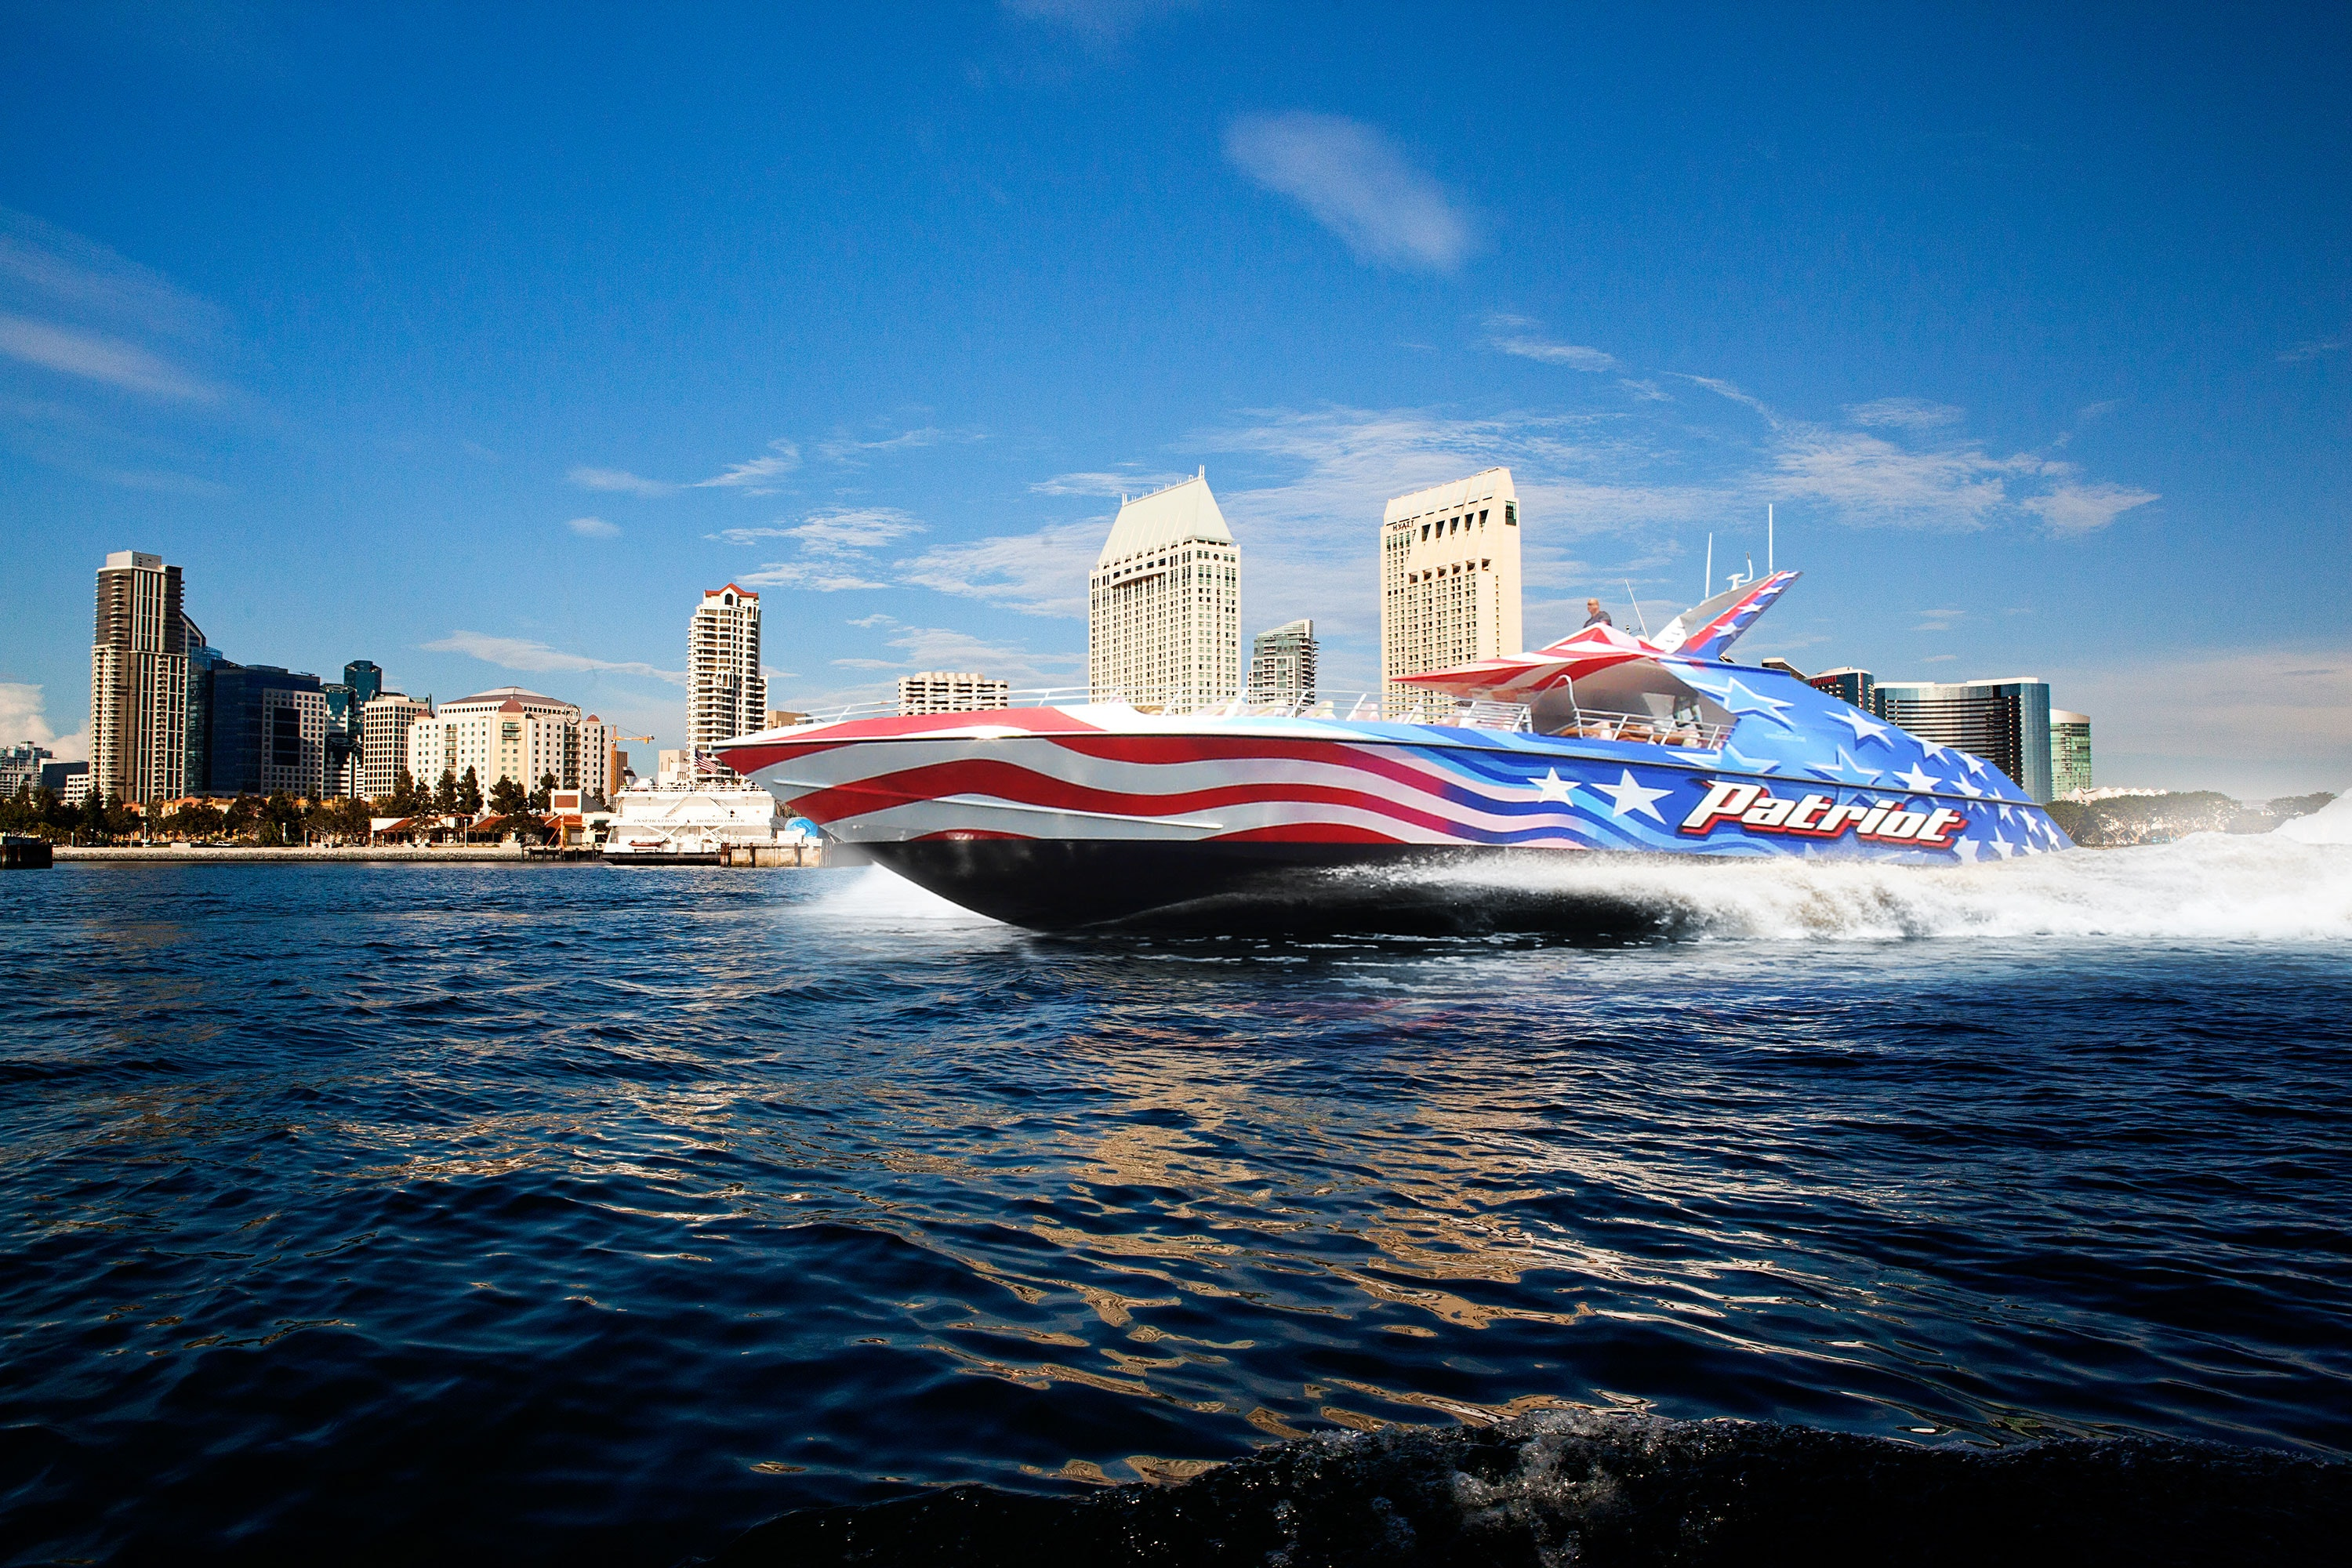 Tickets for Patriot Jet Boat Thrill Ride  Image